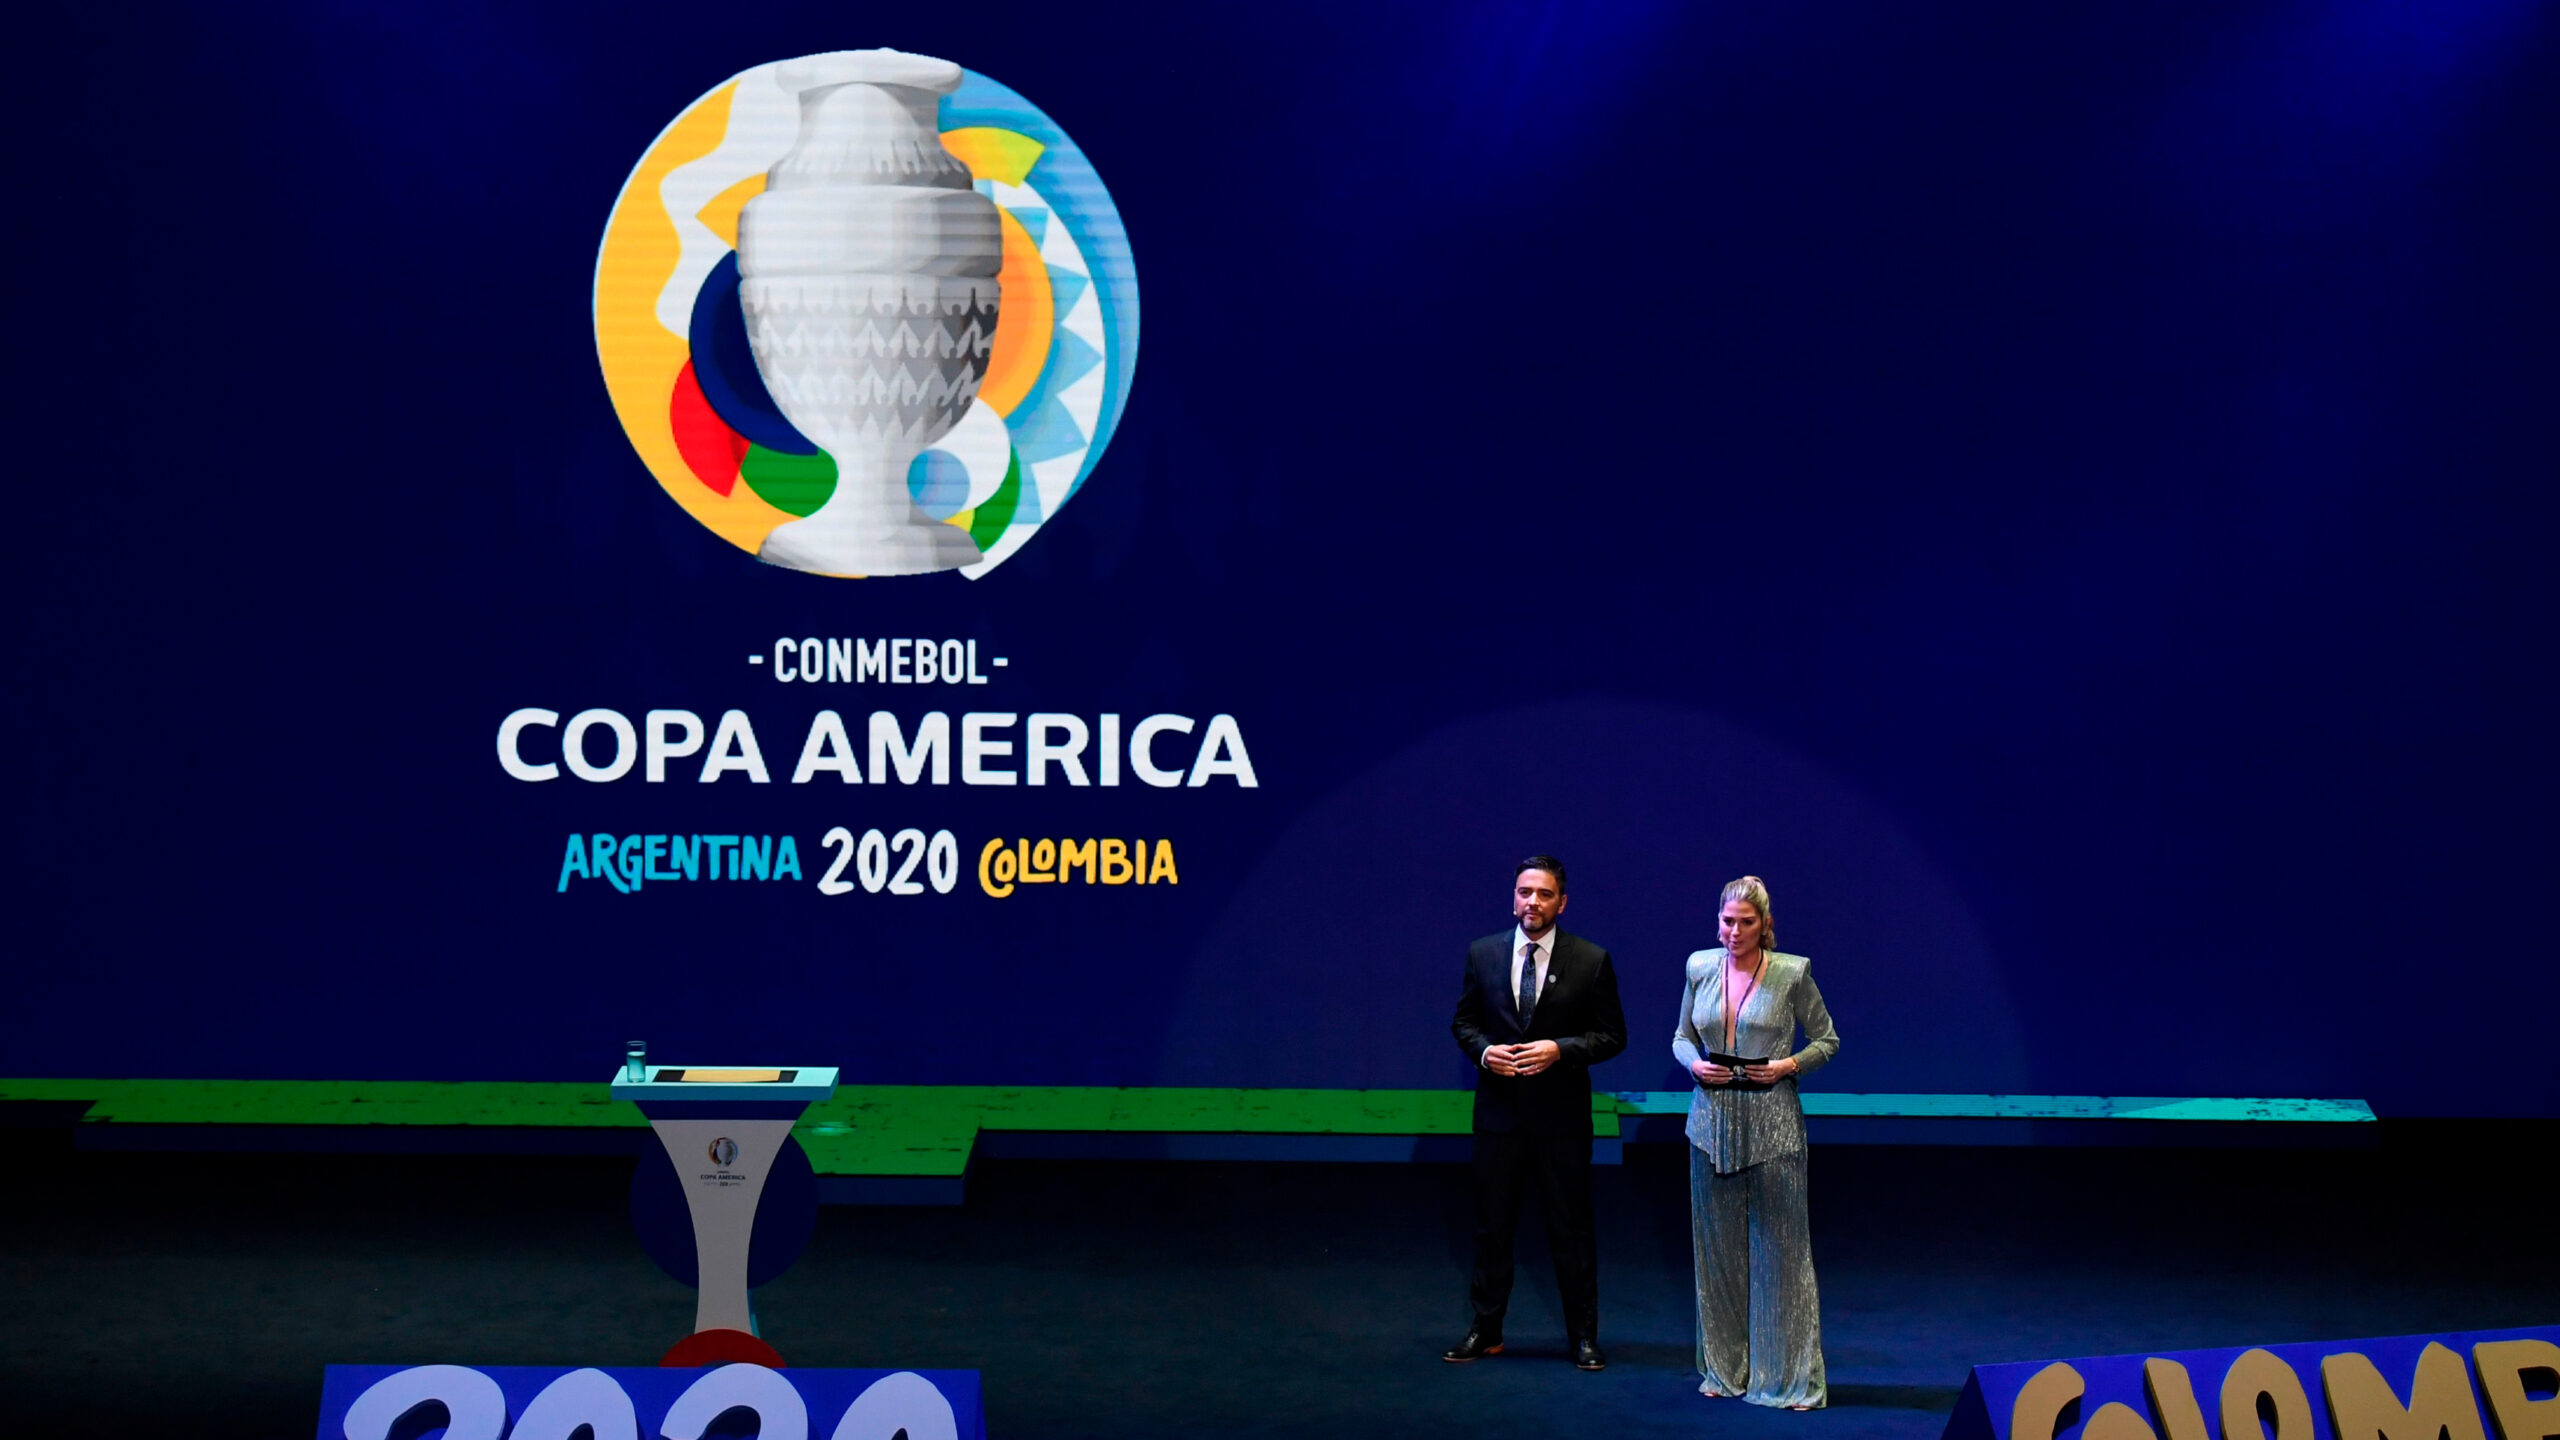 Copa America 2020 postponed until 2021 due to COVID-19, dates announced